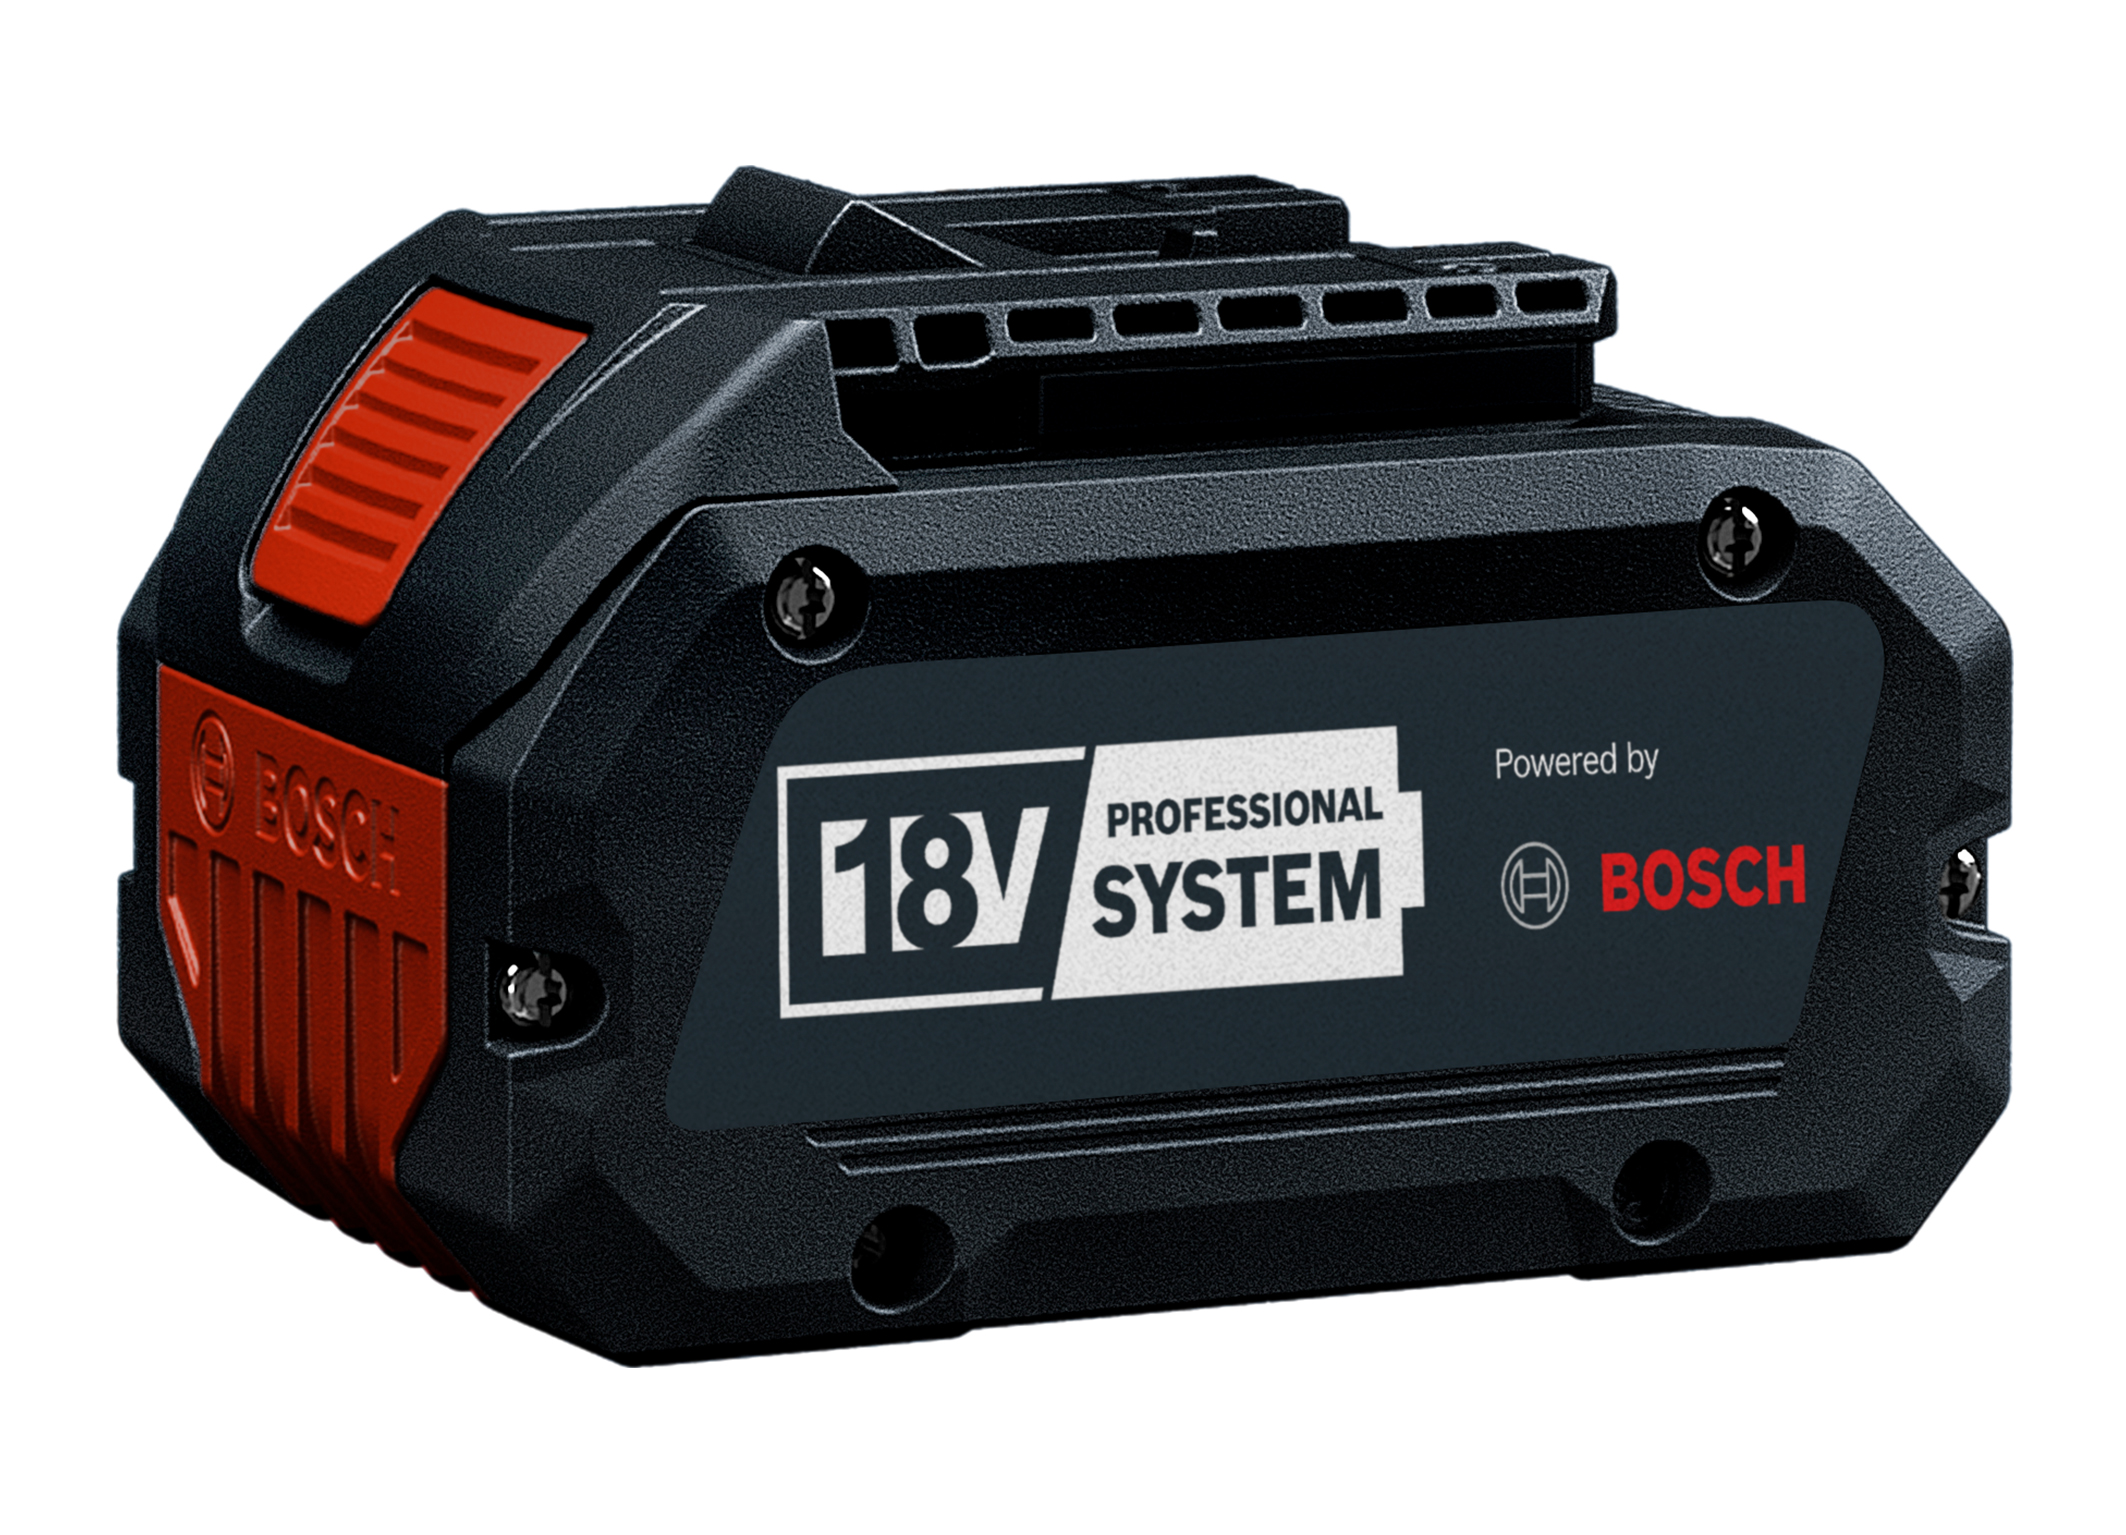 Save time, space and money with one battery for all tools: Bosch opens Professional 18V System for expert brand